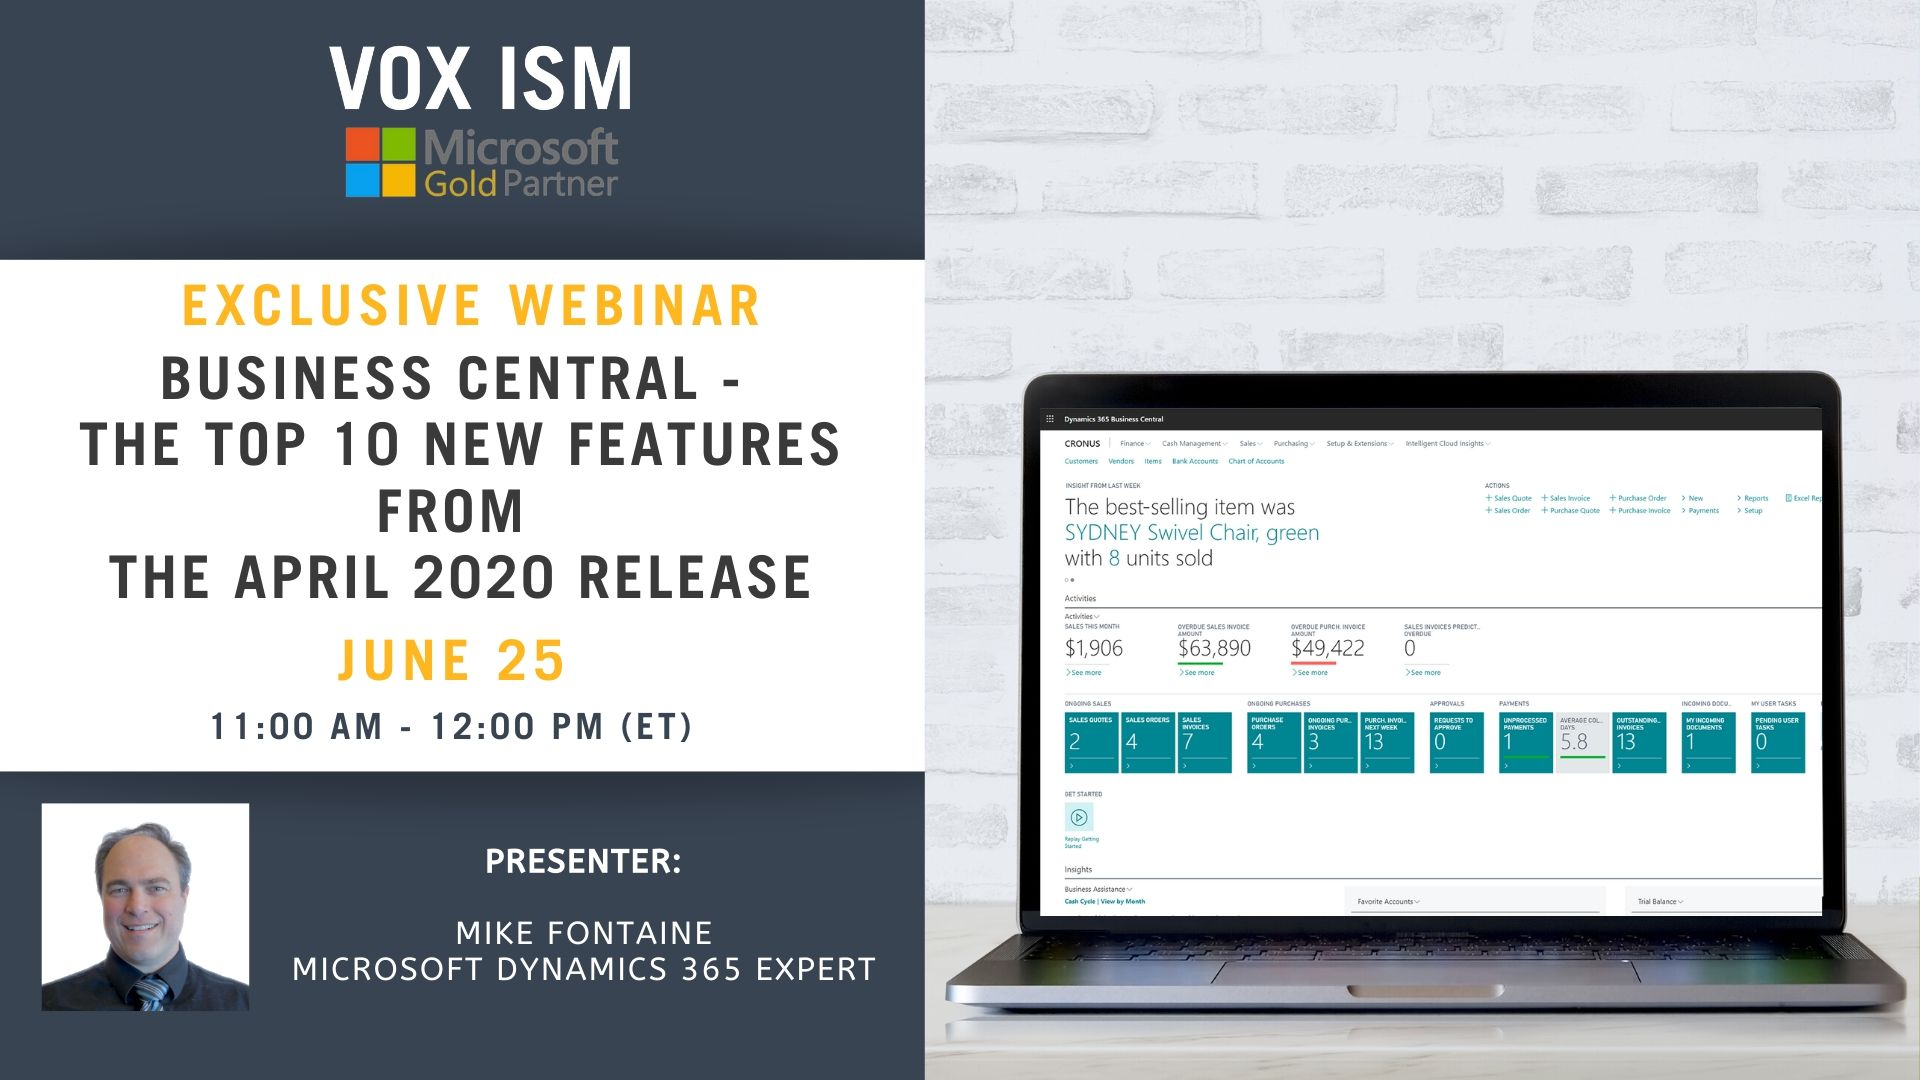 Business Central - The Top 10 New Features From The April 2020 Release - June 25 - Webinar VOX ISM